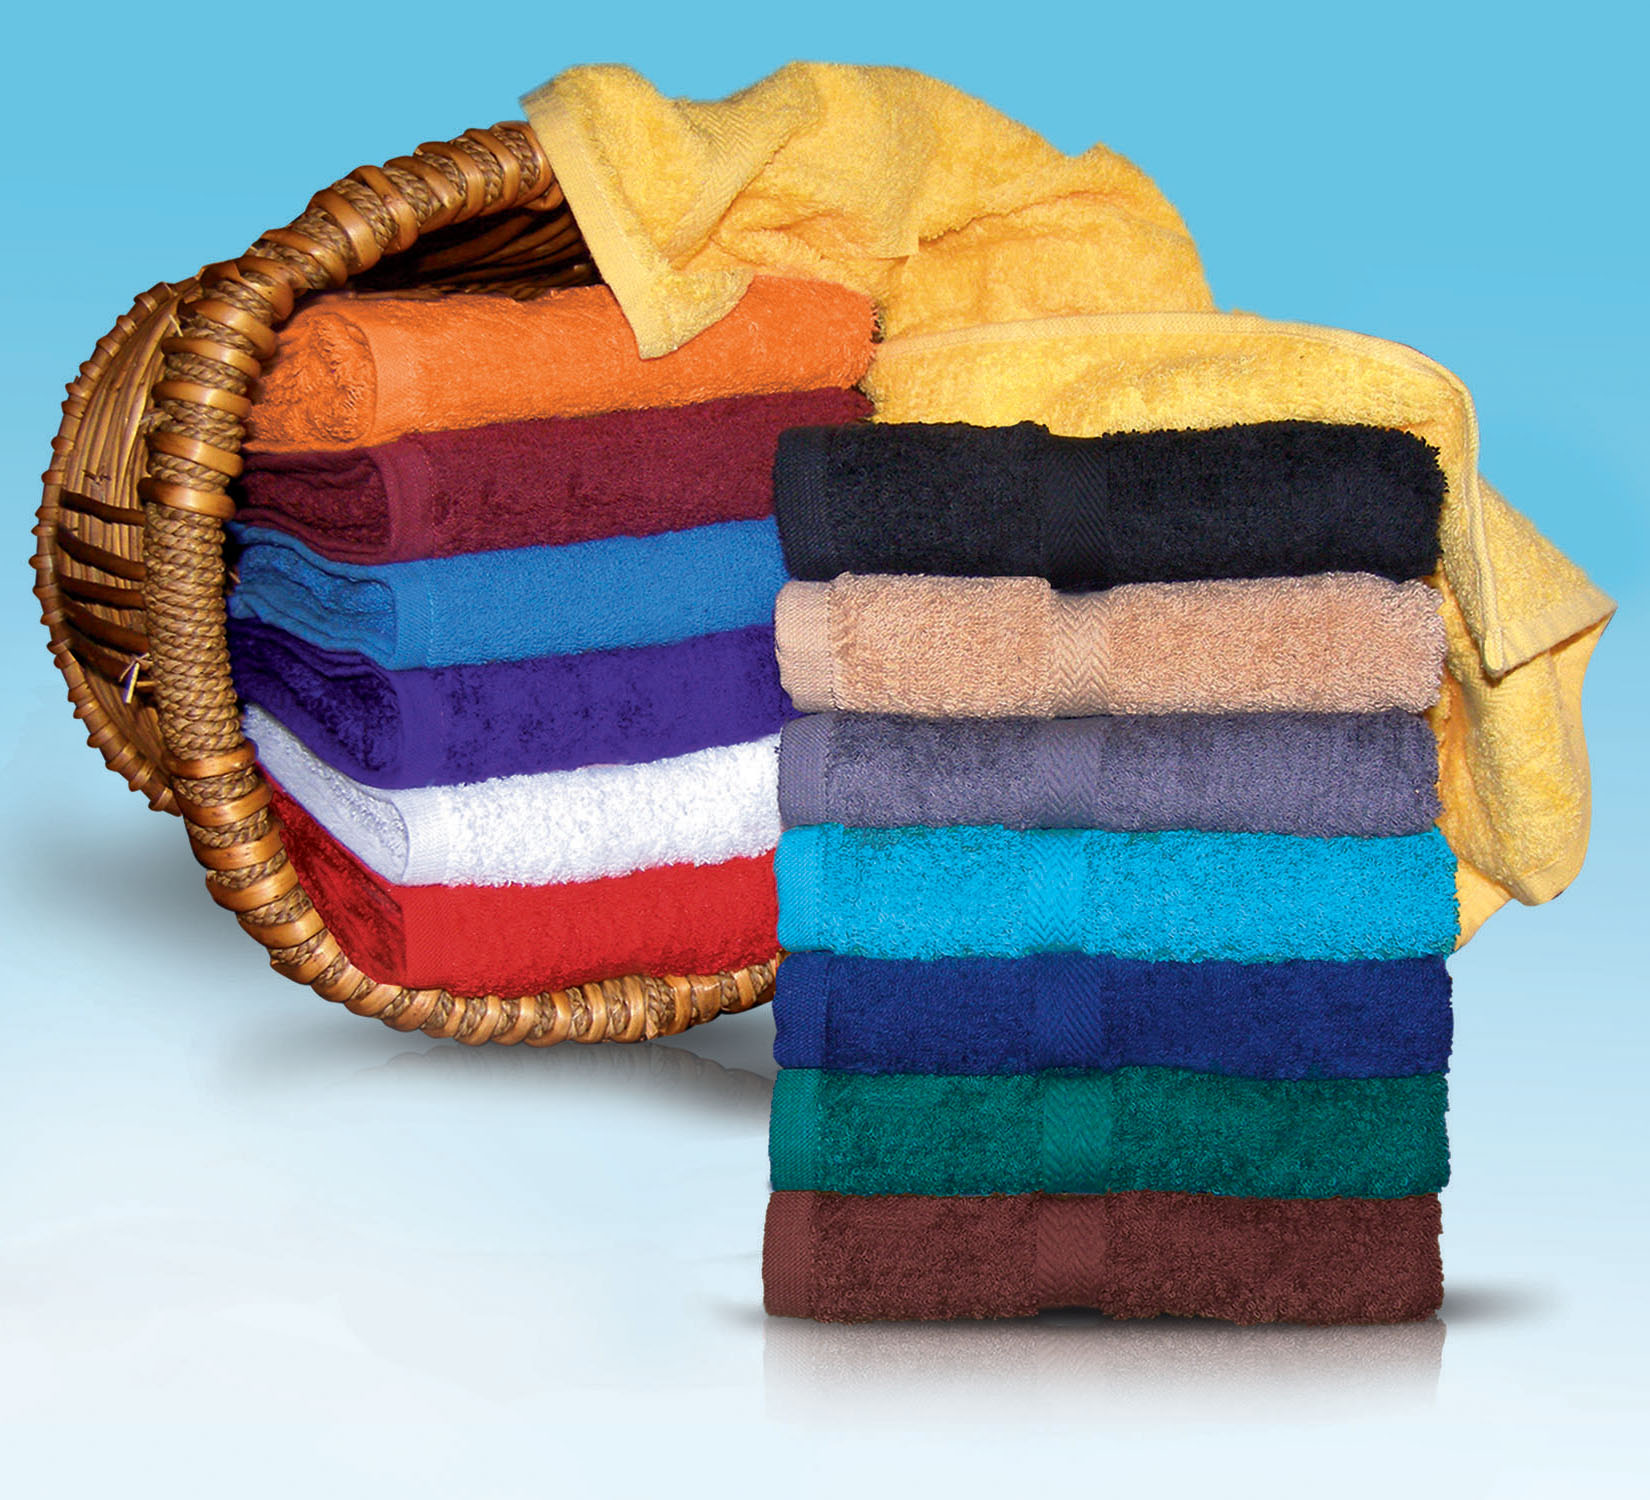 EMBROIDERED 16x30 Hand Towels by Royal Comfort. 4. Lbs per/ dz. weight.